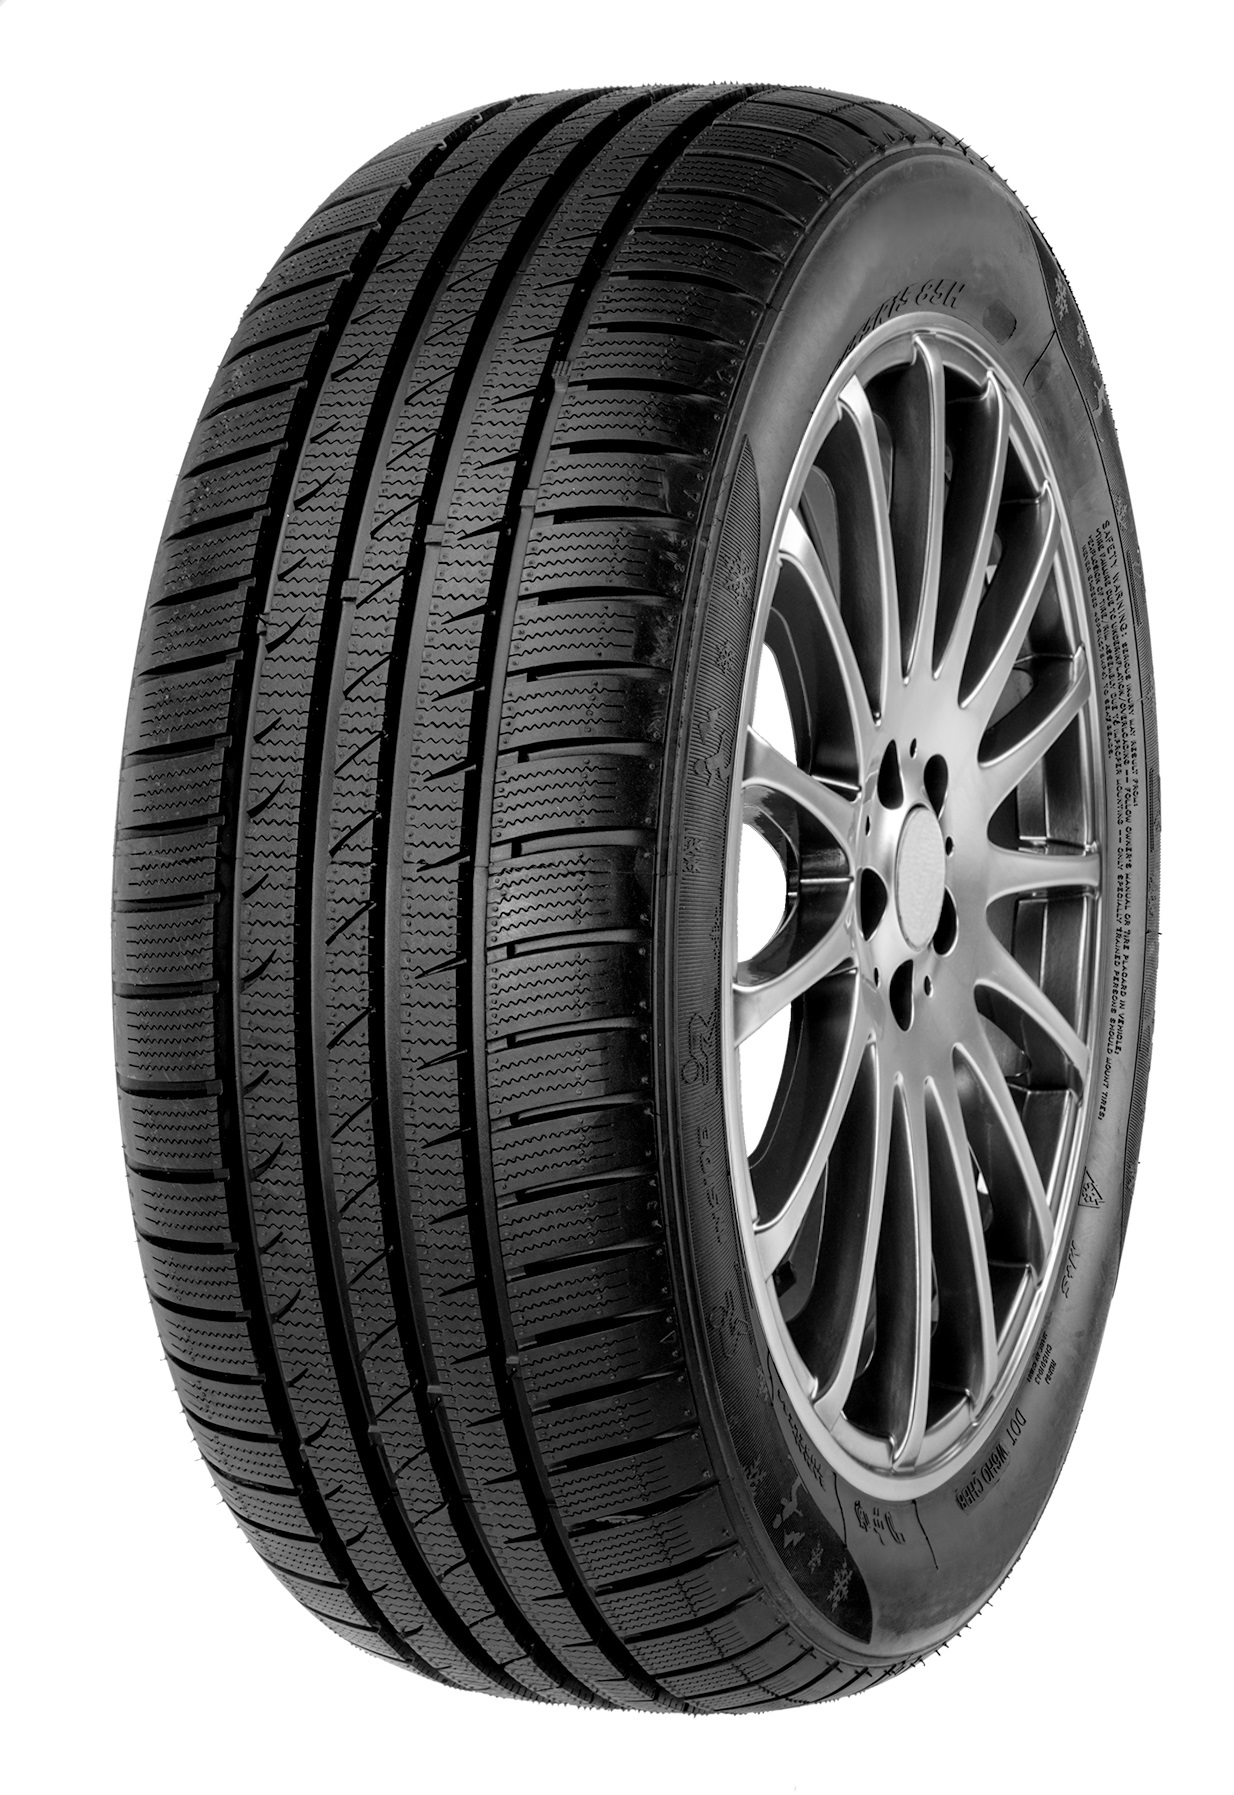 Gomme Nuove Atlas 245/40 R18 97V POLARBEAR UHP XL M+S pneumatici nuovi Invernale